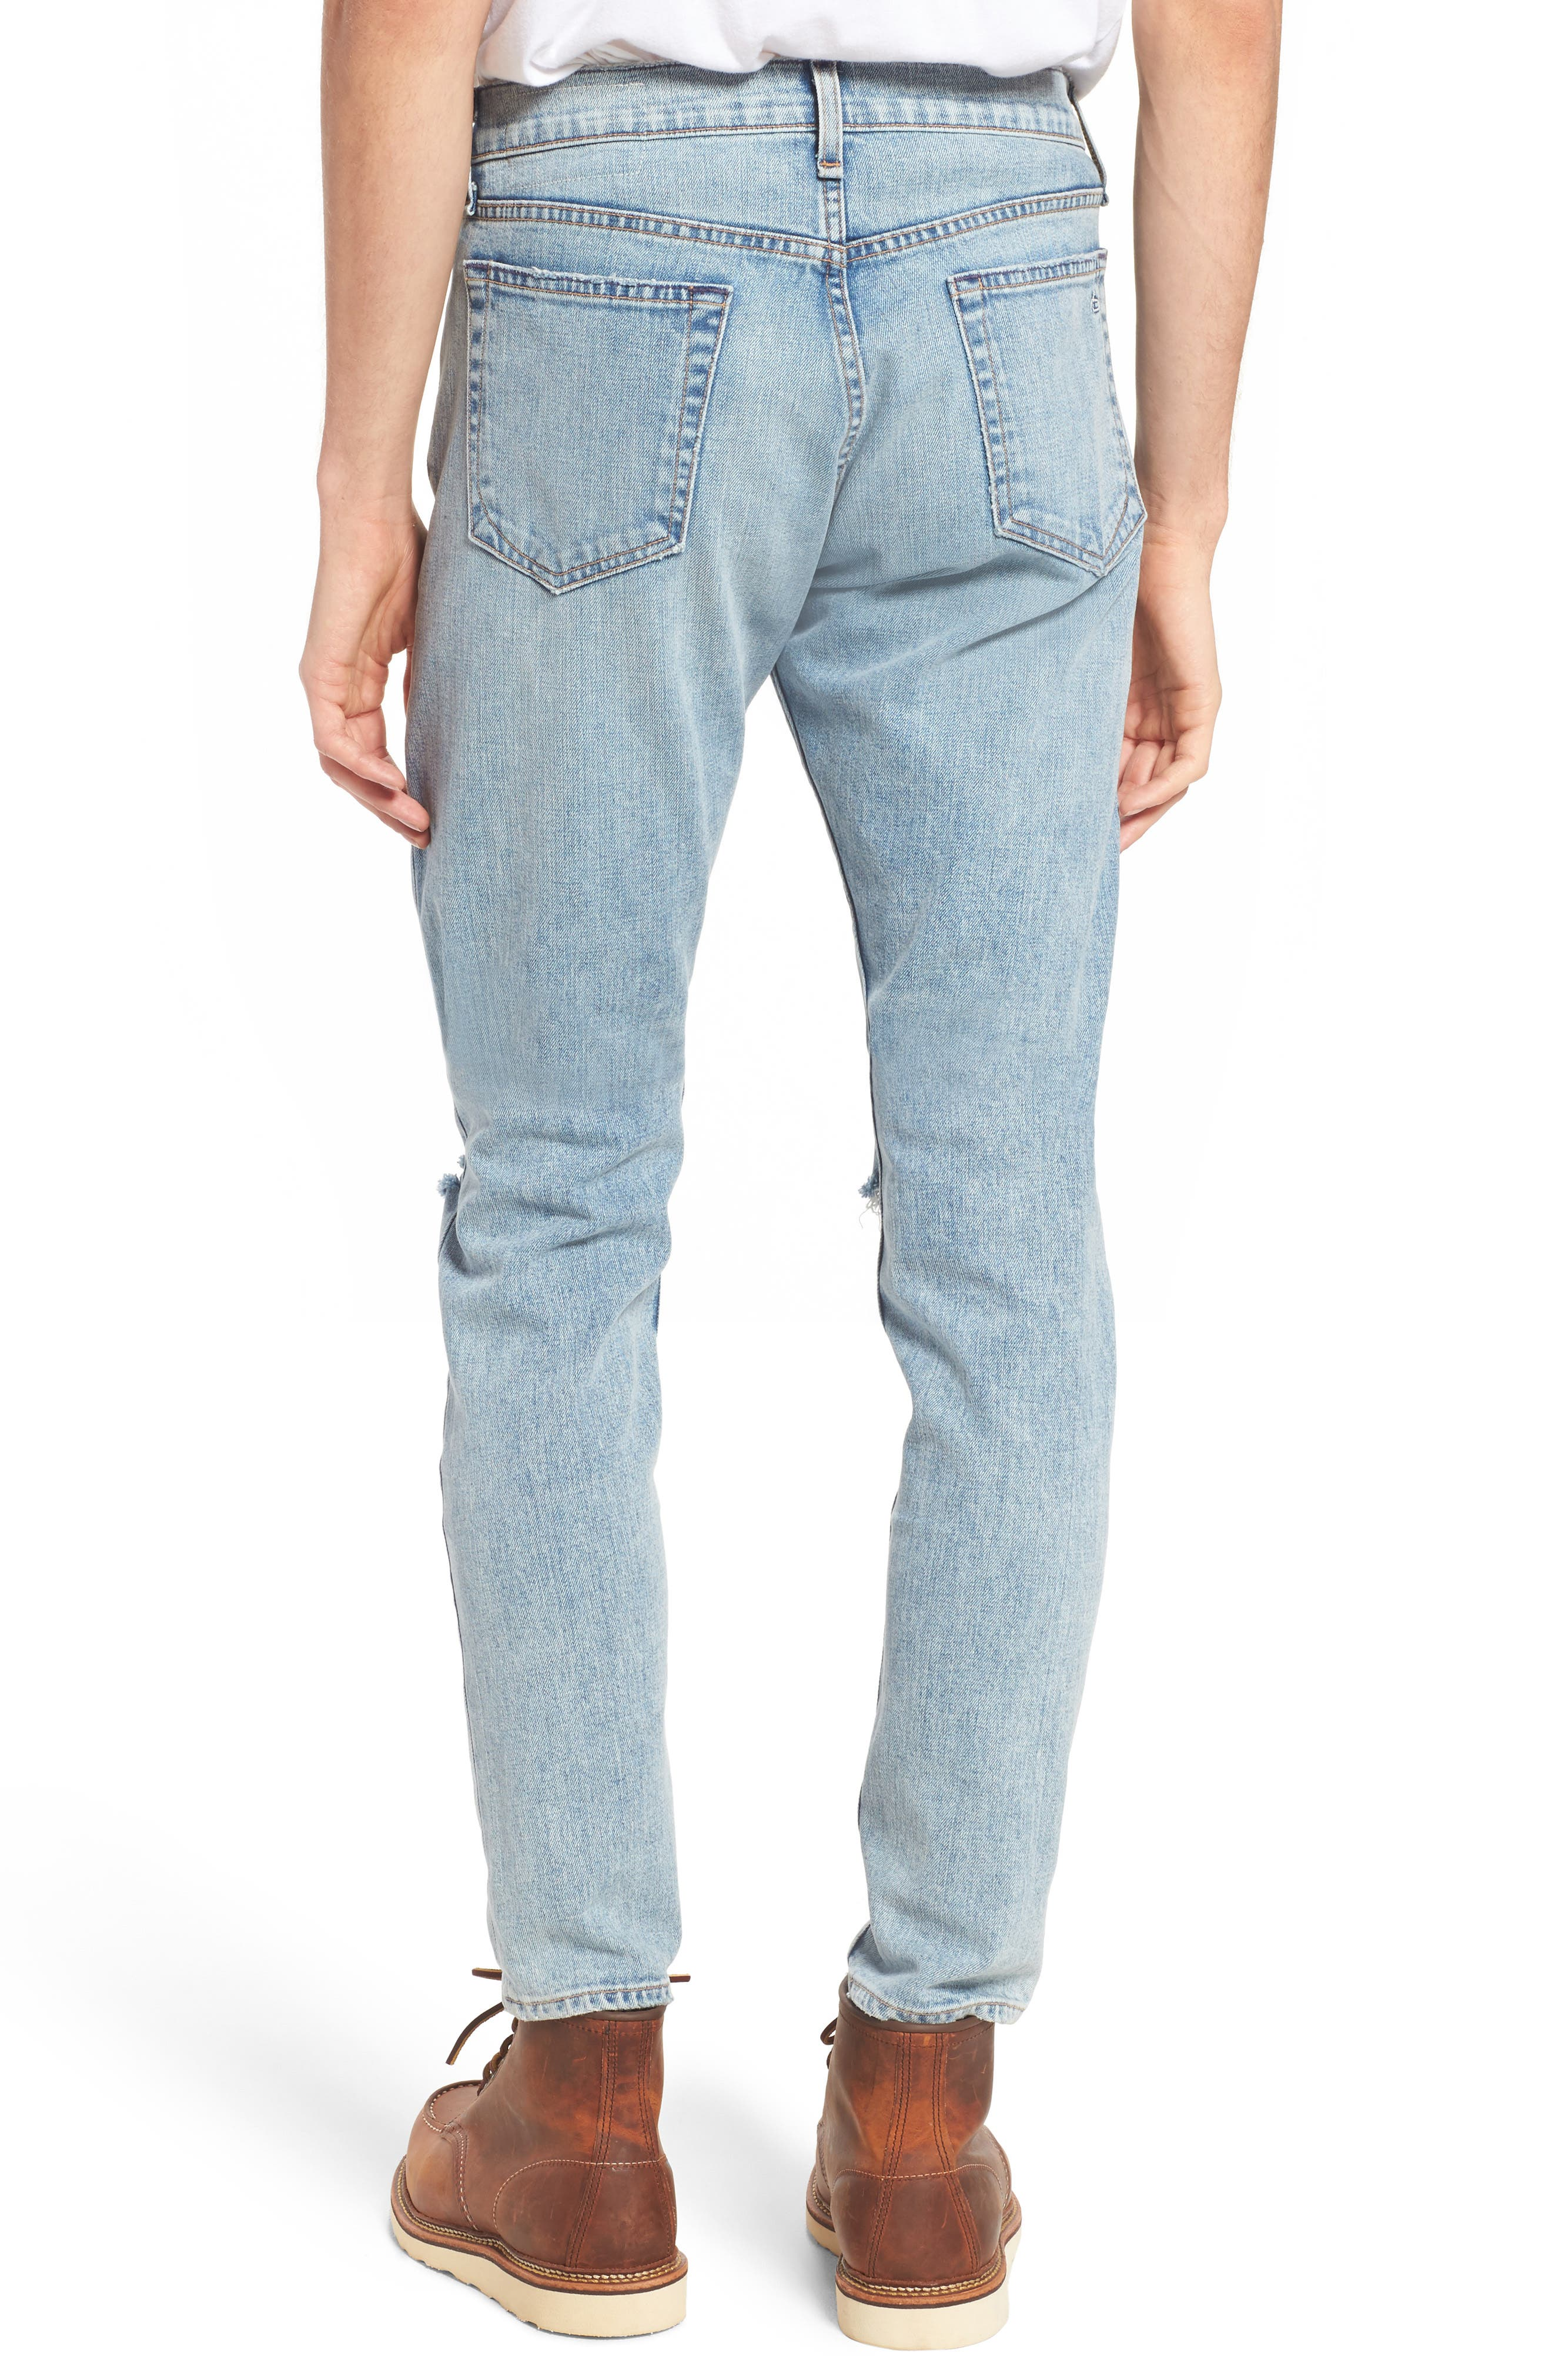 Fit 1 Skinny Fit Jeans,                             Alternate thumbnail 2, color,                             Jameson With Holes